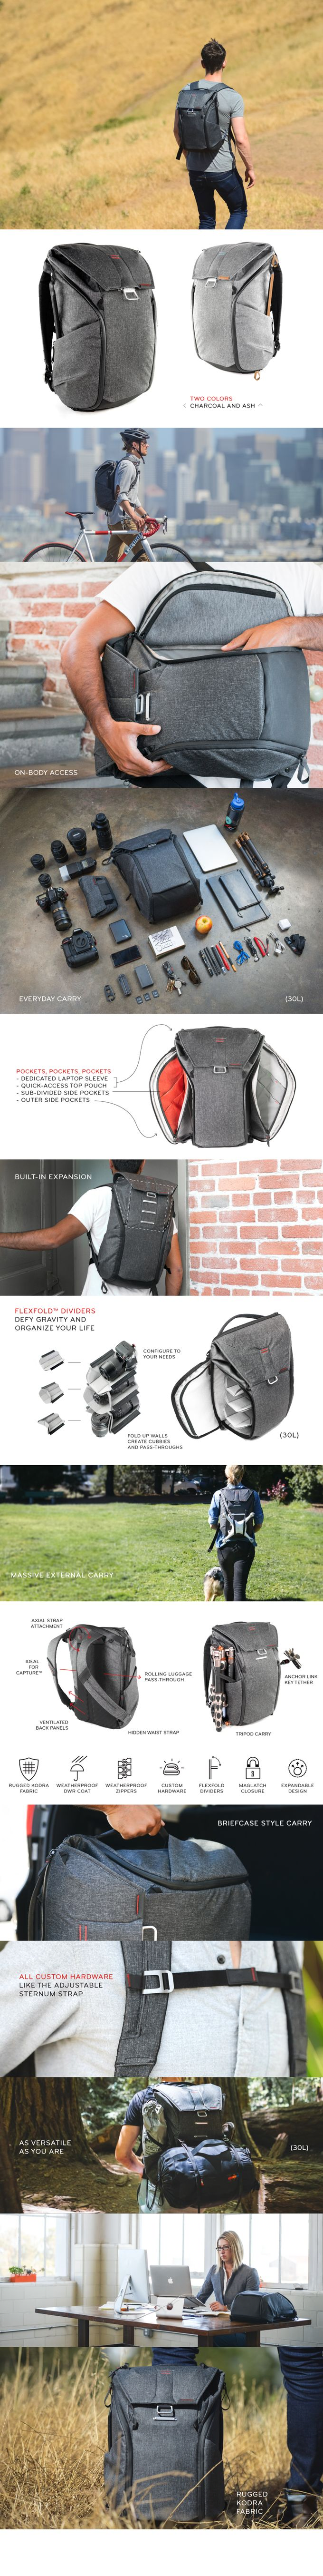 The world's best everyday bags. Designed by photographers to revolutionize camera carry, but built for everyone to organize your life.